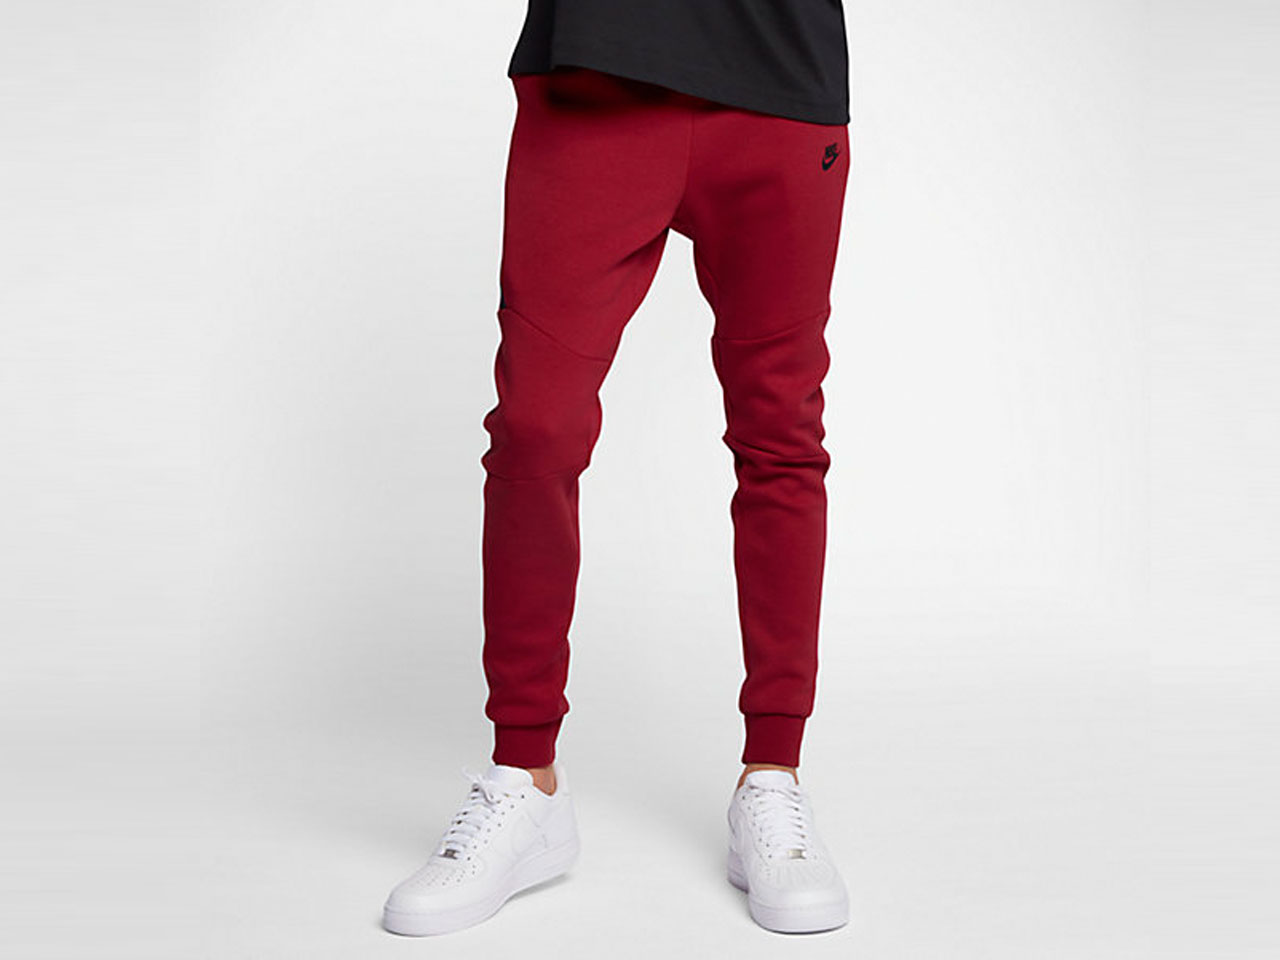 ba6b2e31e770 The Best Sweatpants to Keep you Looking Cool in Fall 2017